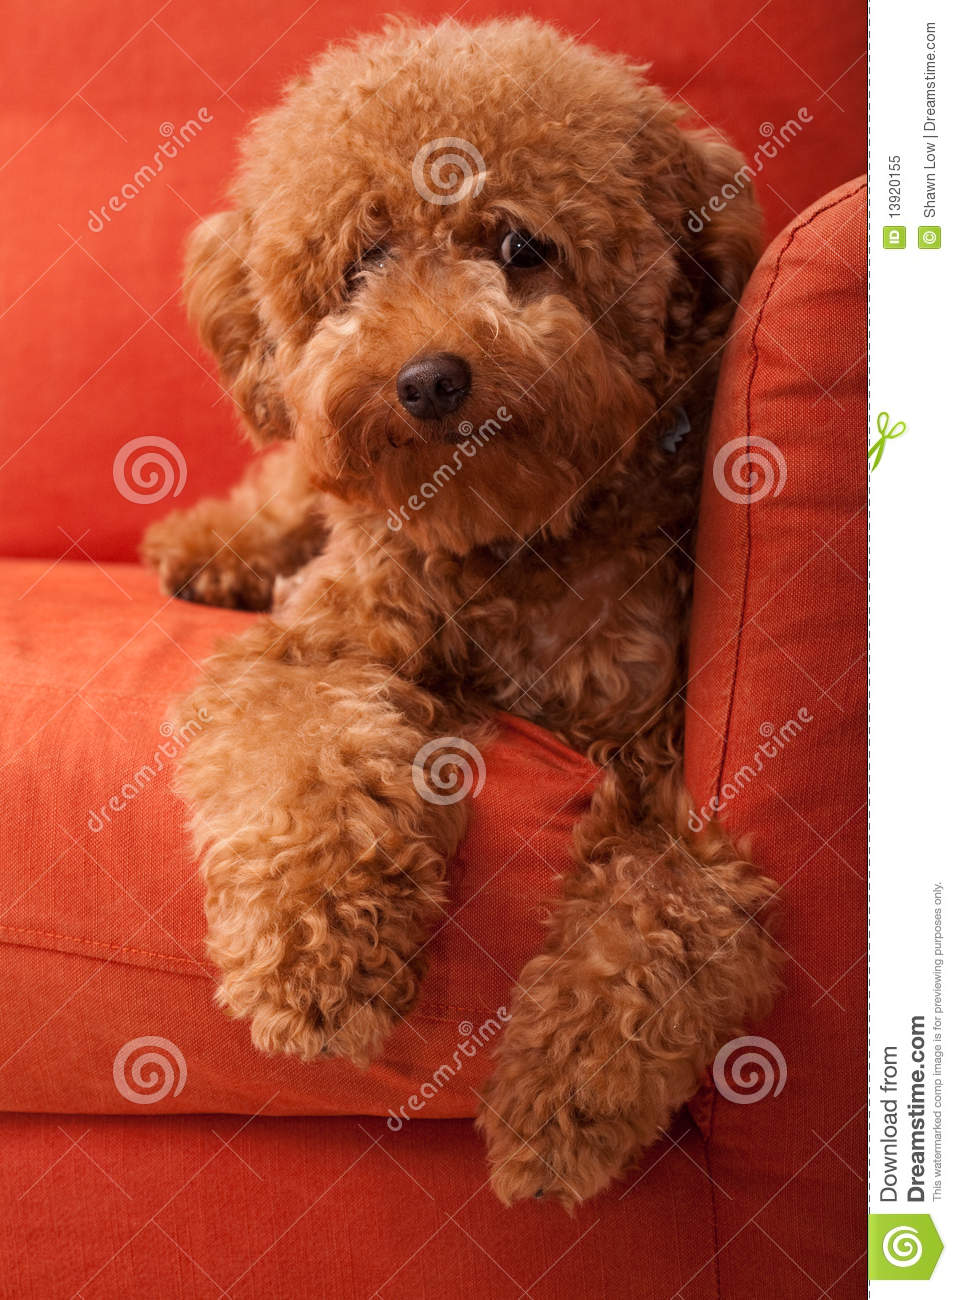 fuzzy sofa extra large cushions uk toy poodle lazing on 2 stock image - image: 13920155